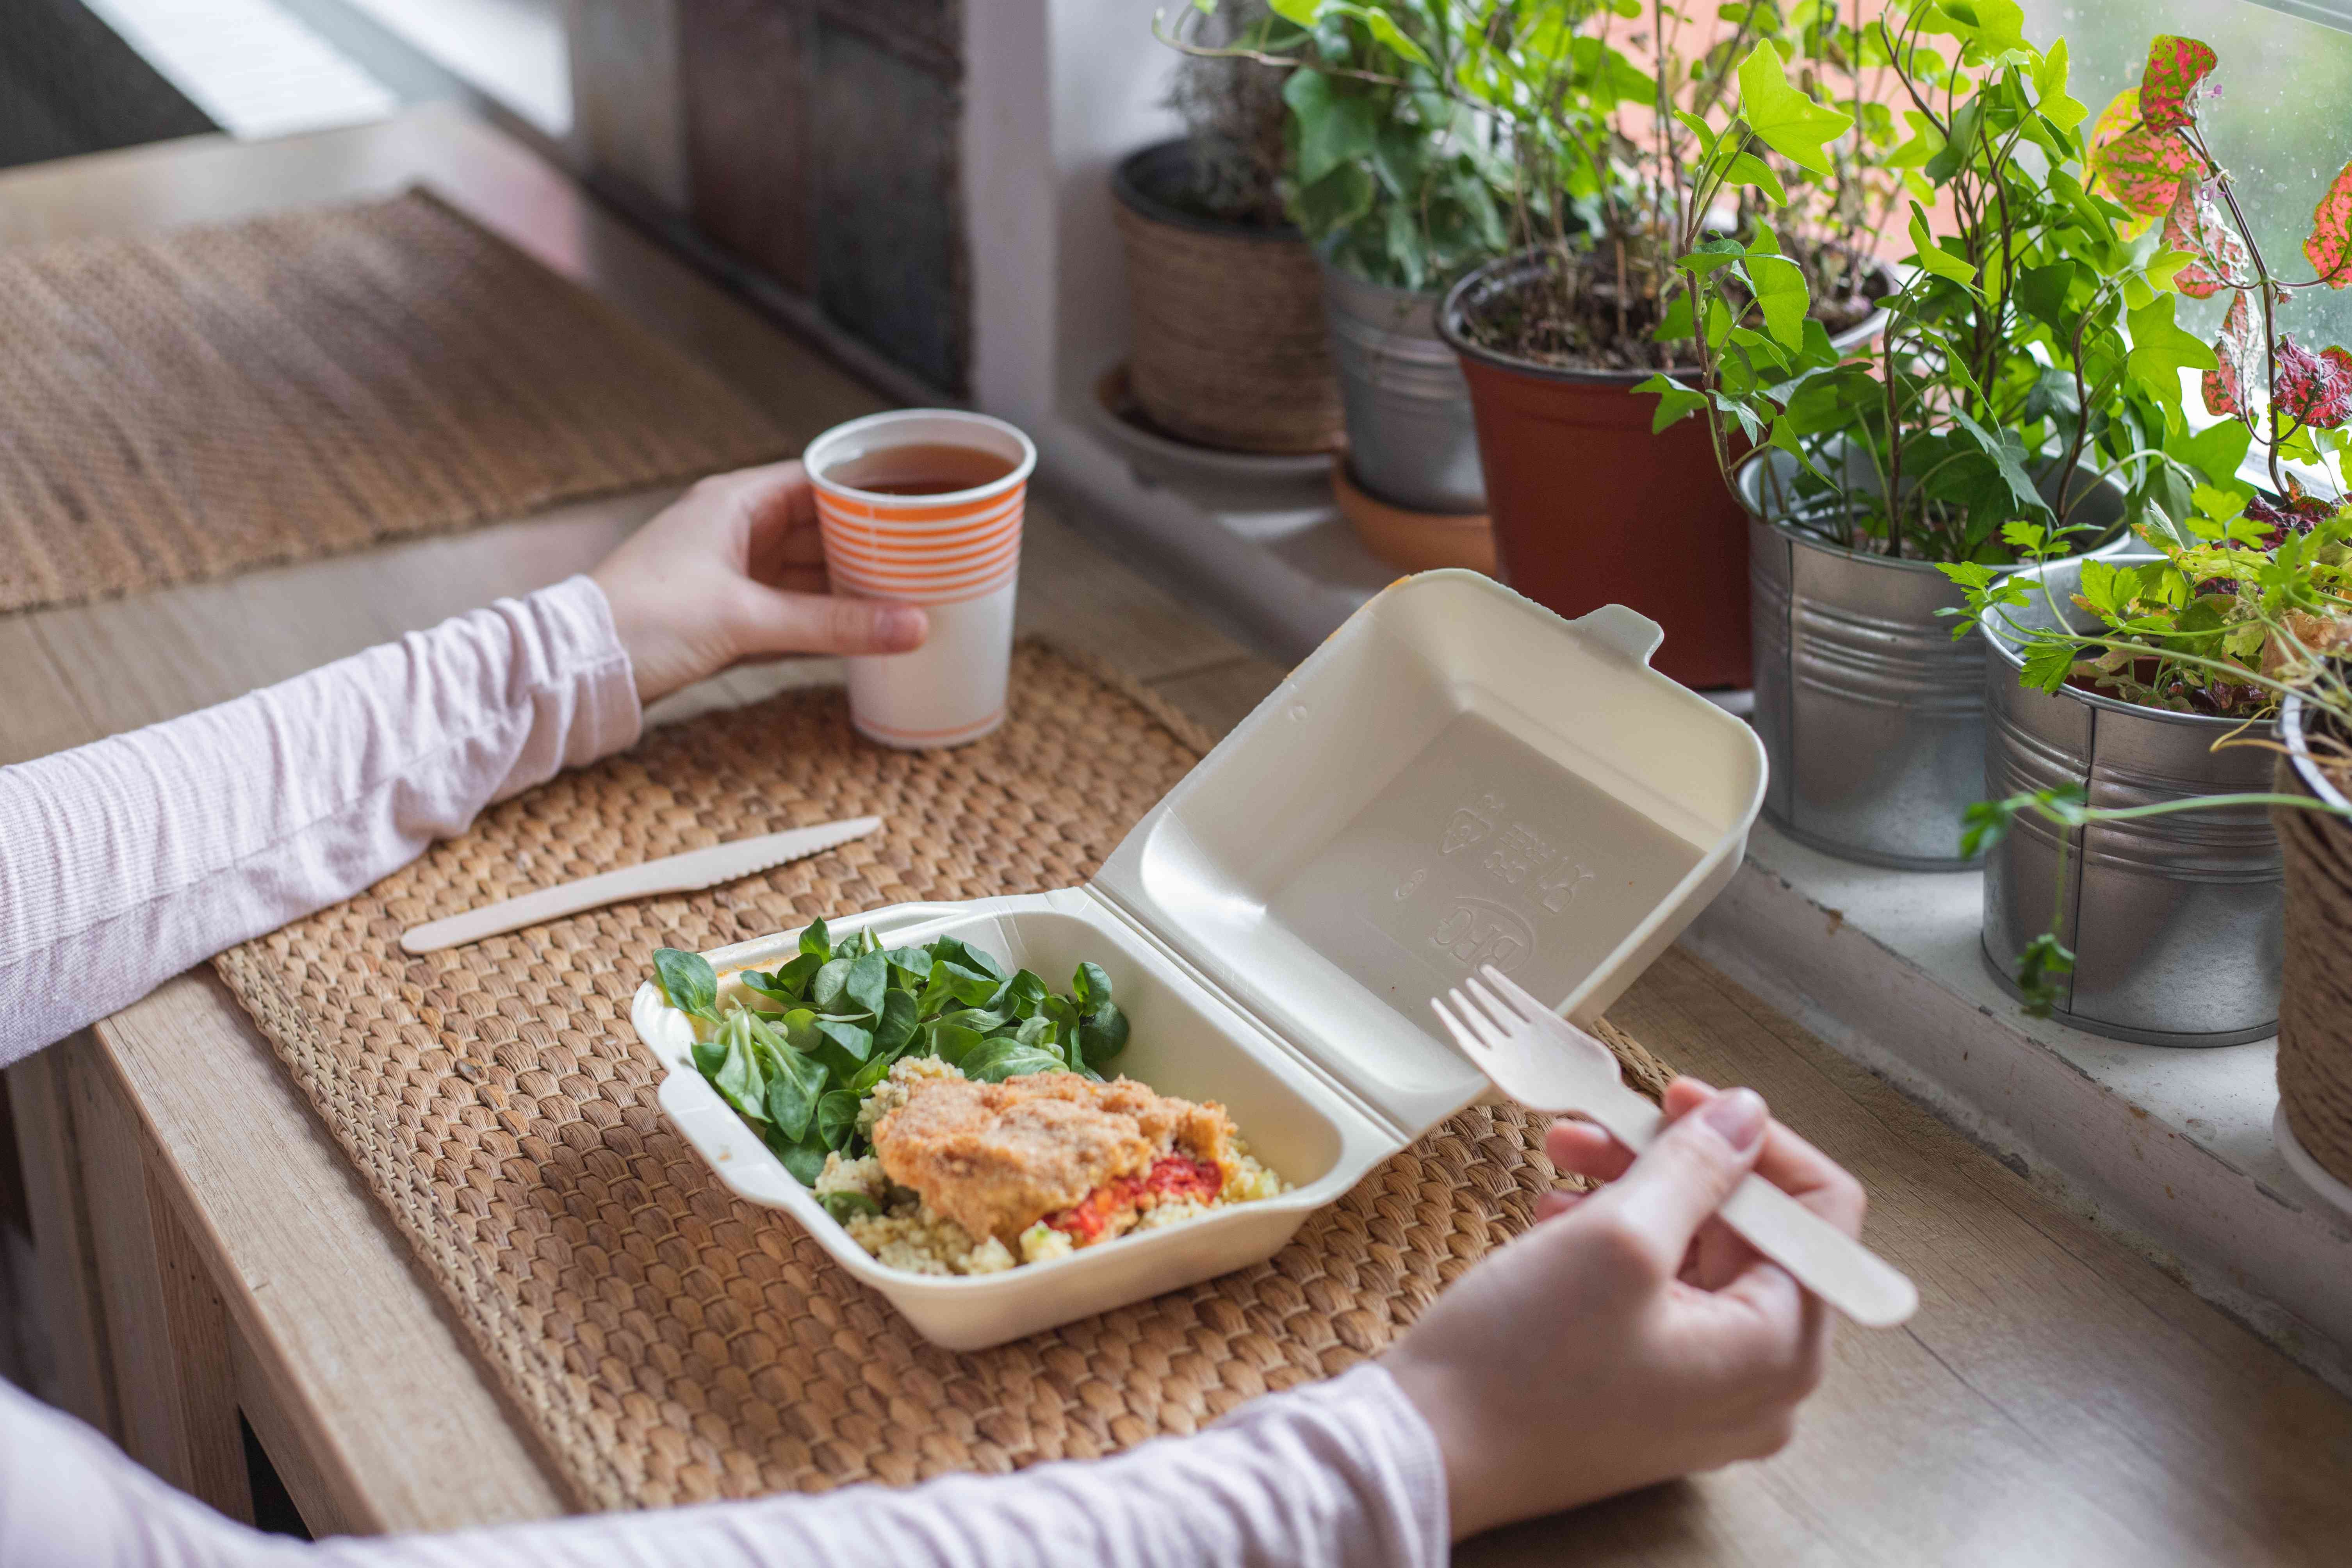 person sits at window for lunch with biodegradable and disposable plastic containers, fork and cup